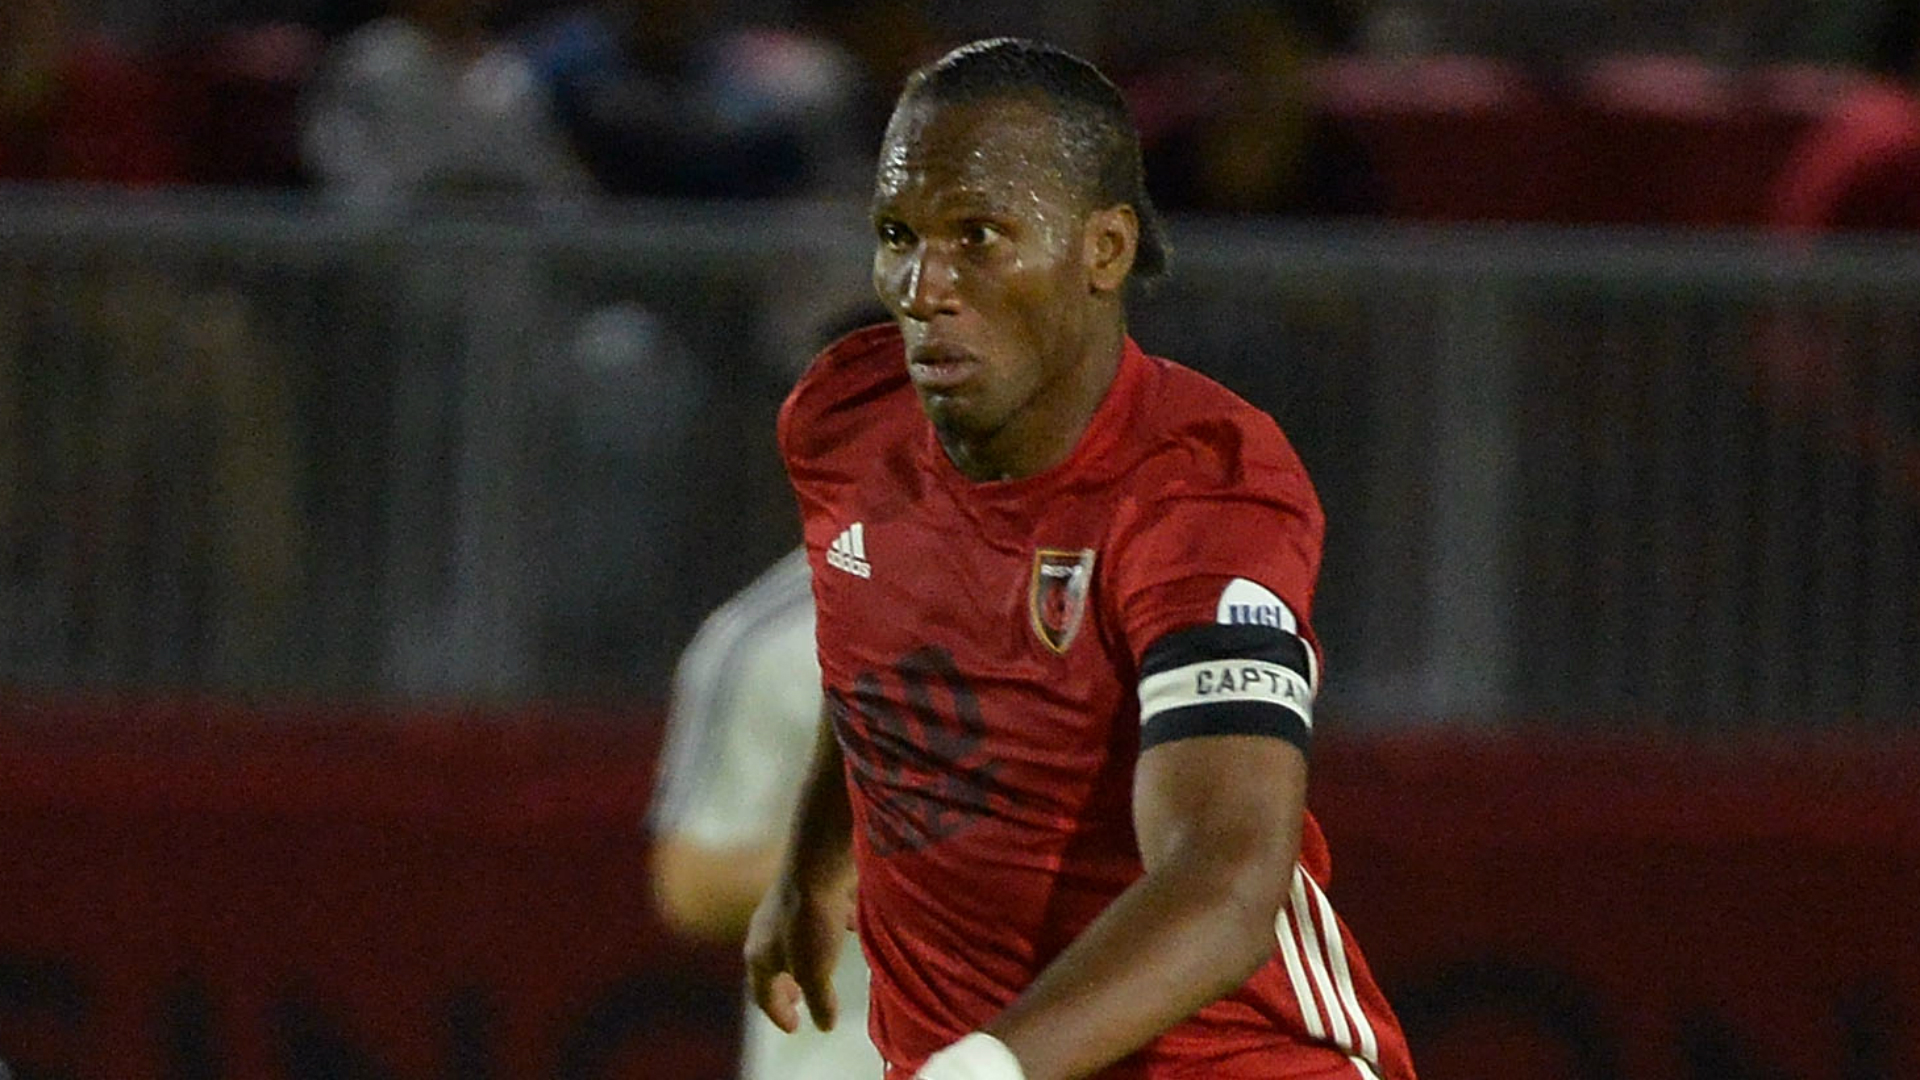 Phoenix Rising's Drogba scores free-kick goal from over 30 yards out